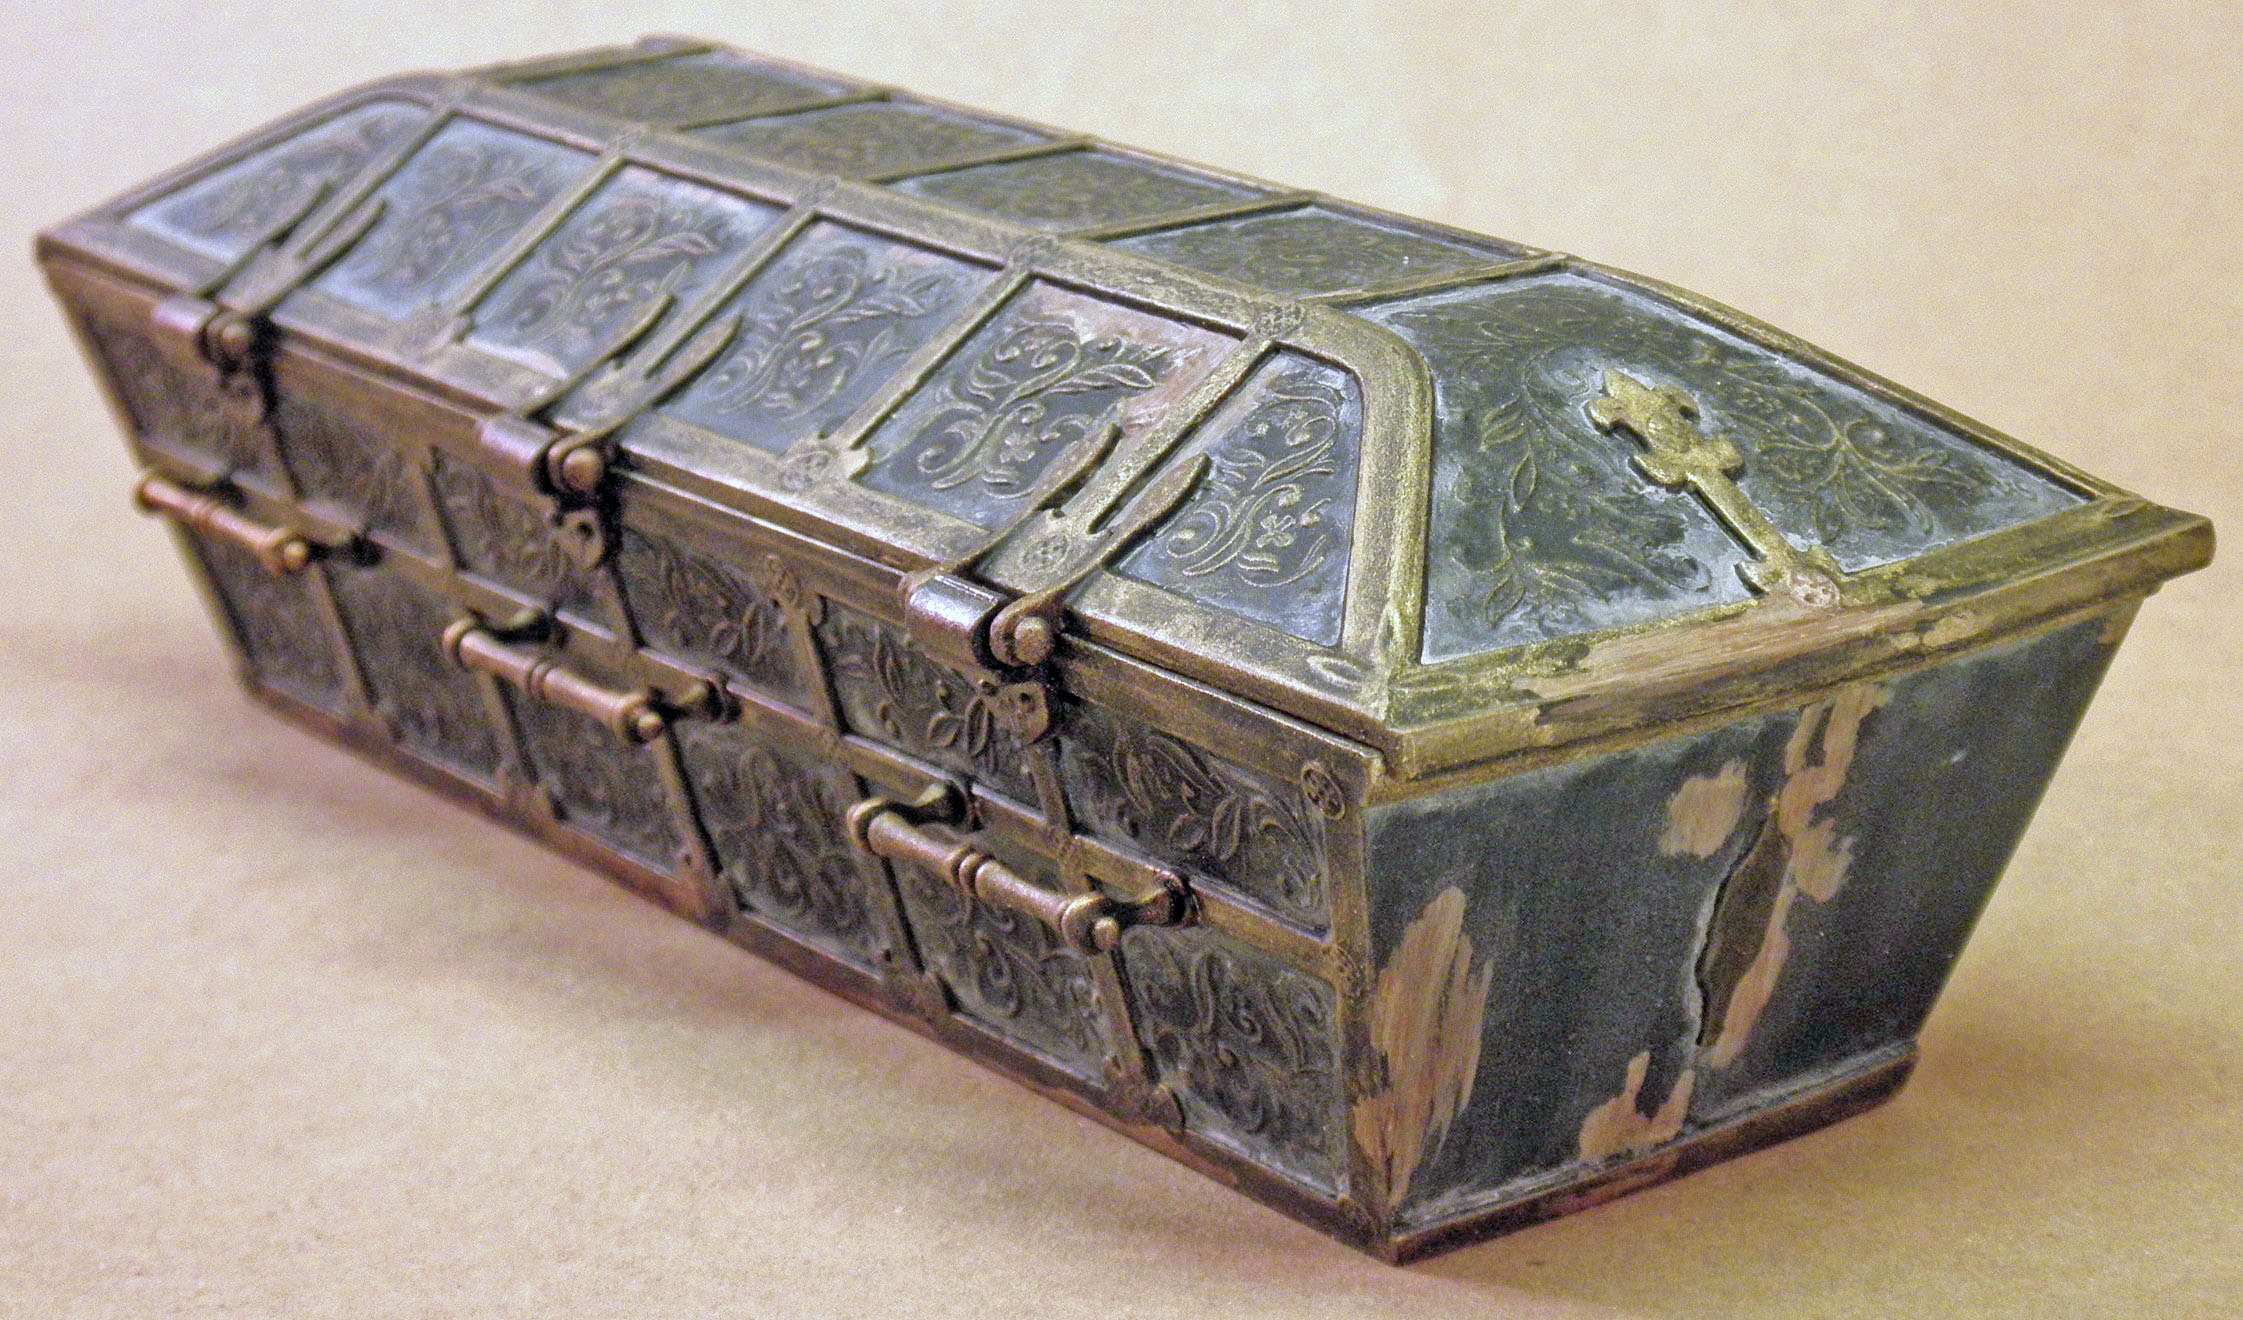 SC Vampire Coffin, Hinge Side